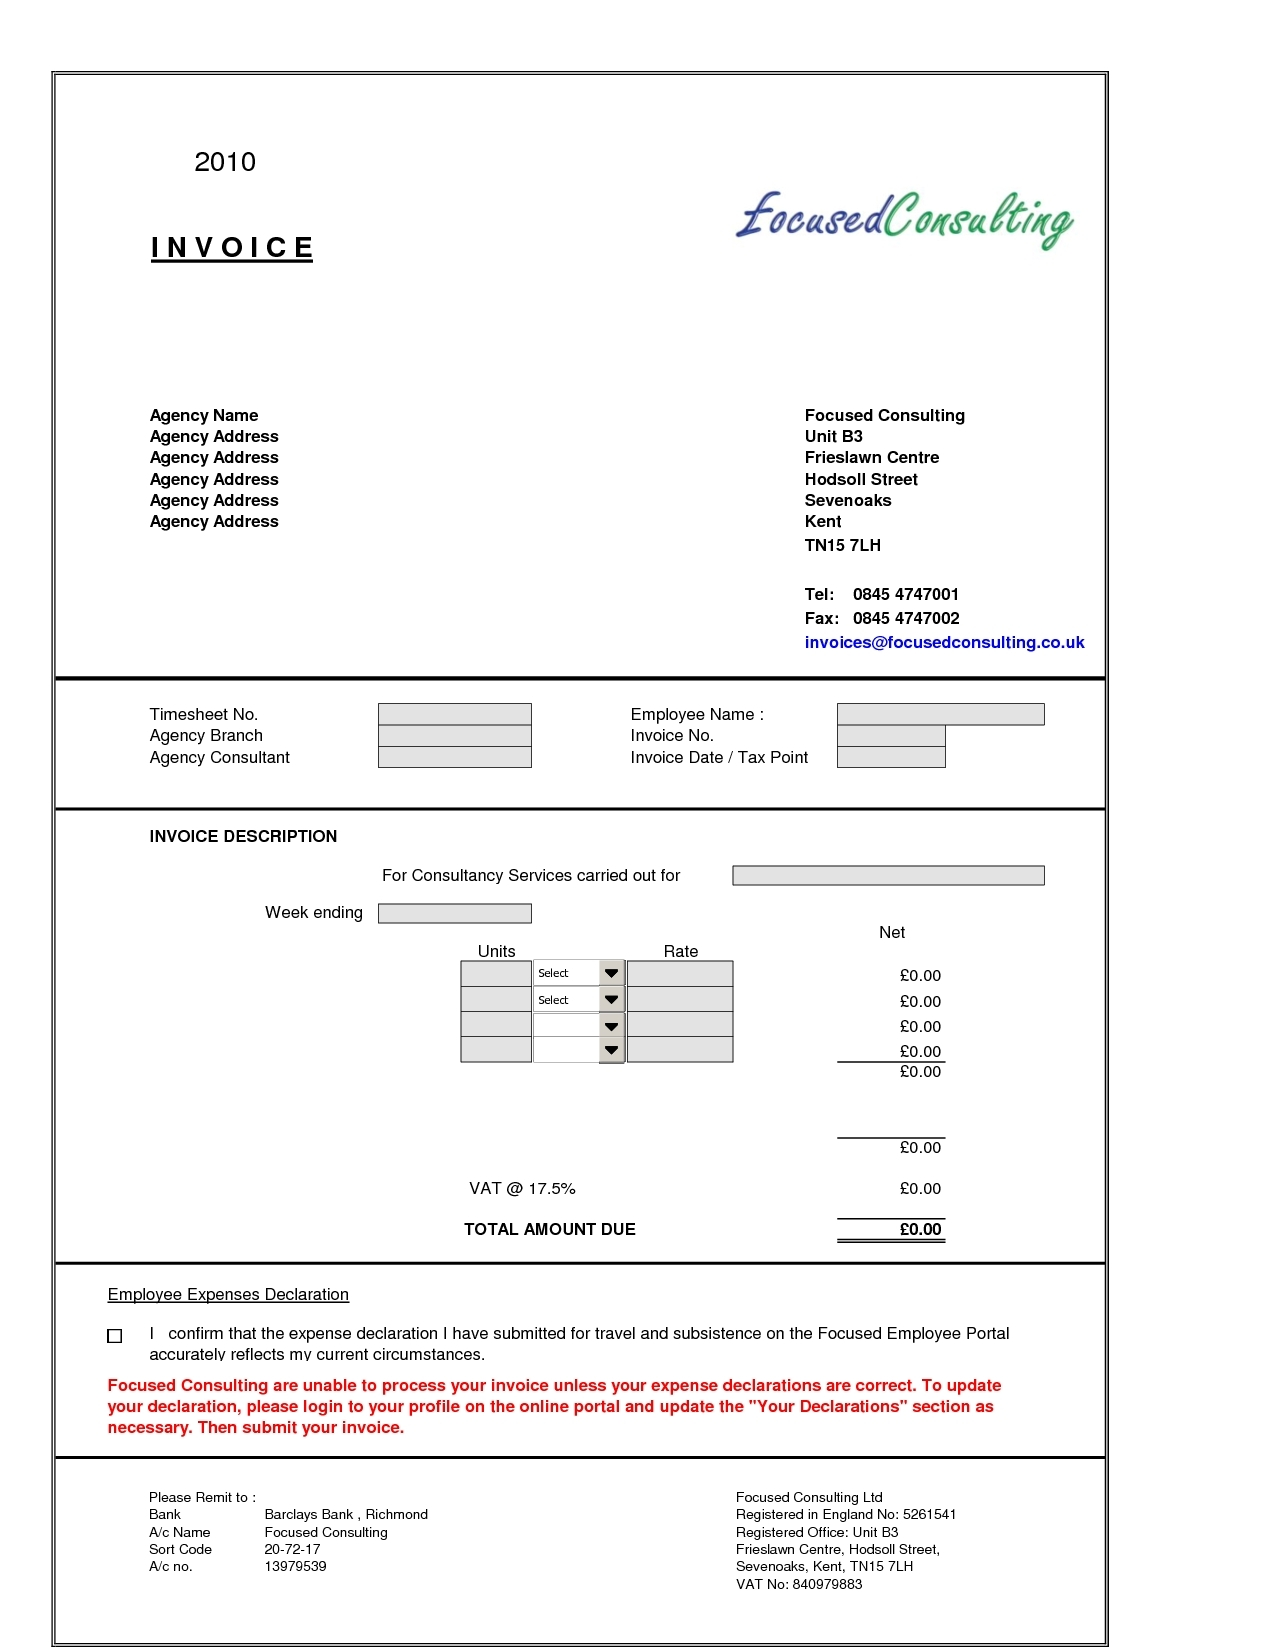 consultancy invoice template invoice template free 2016 invoice format for consultancy